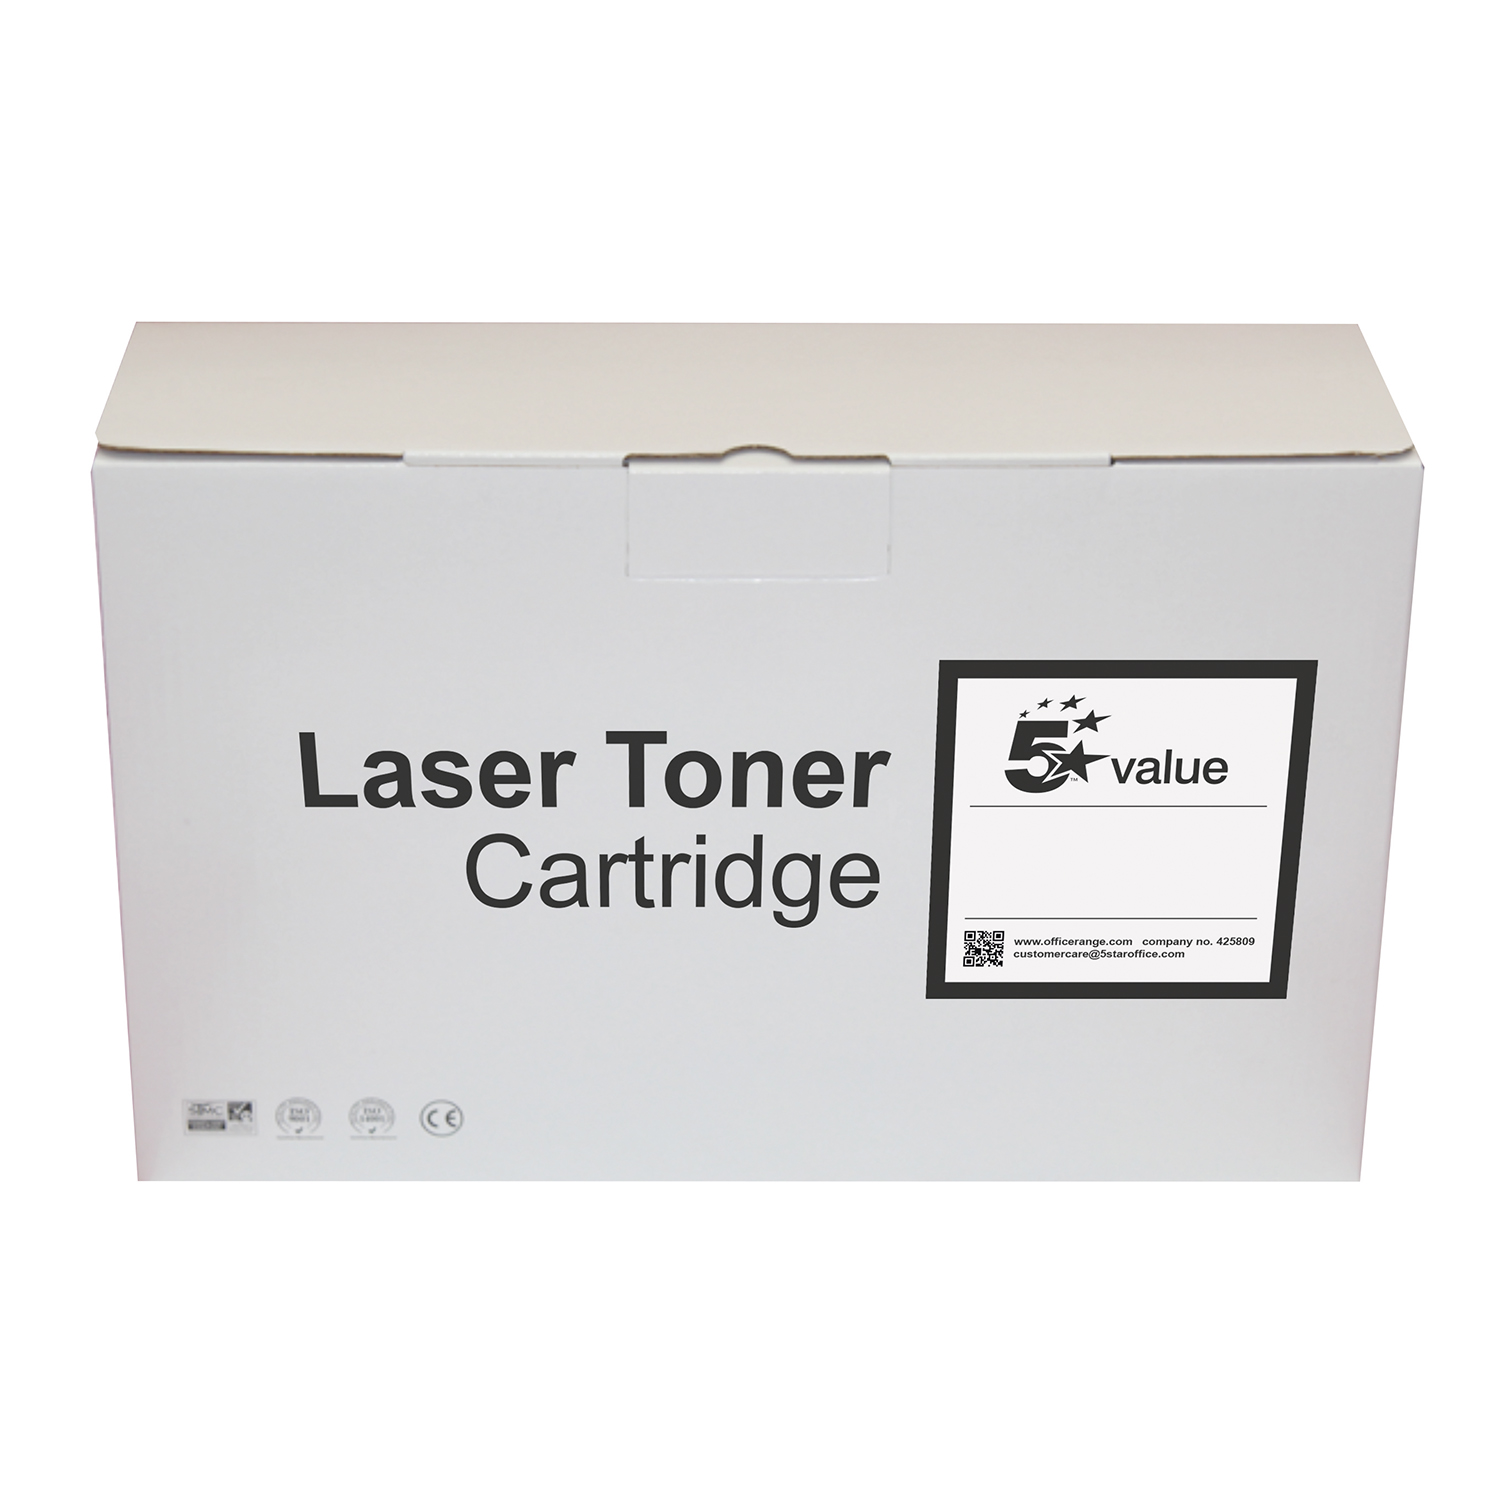 5 Star Value Reman Laser Toner Cartridge Page Life 4000pp Black Canon FX10 0263B002 Alternative